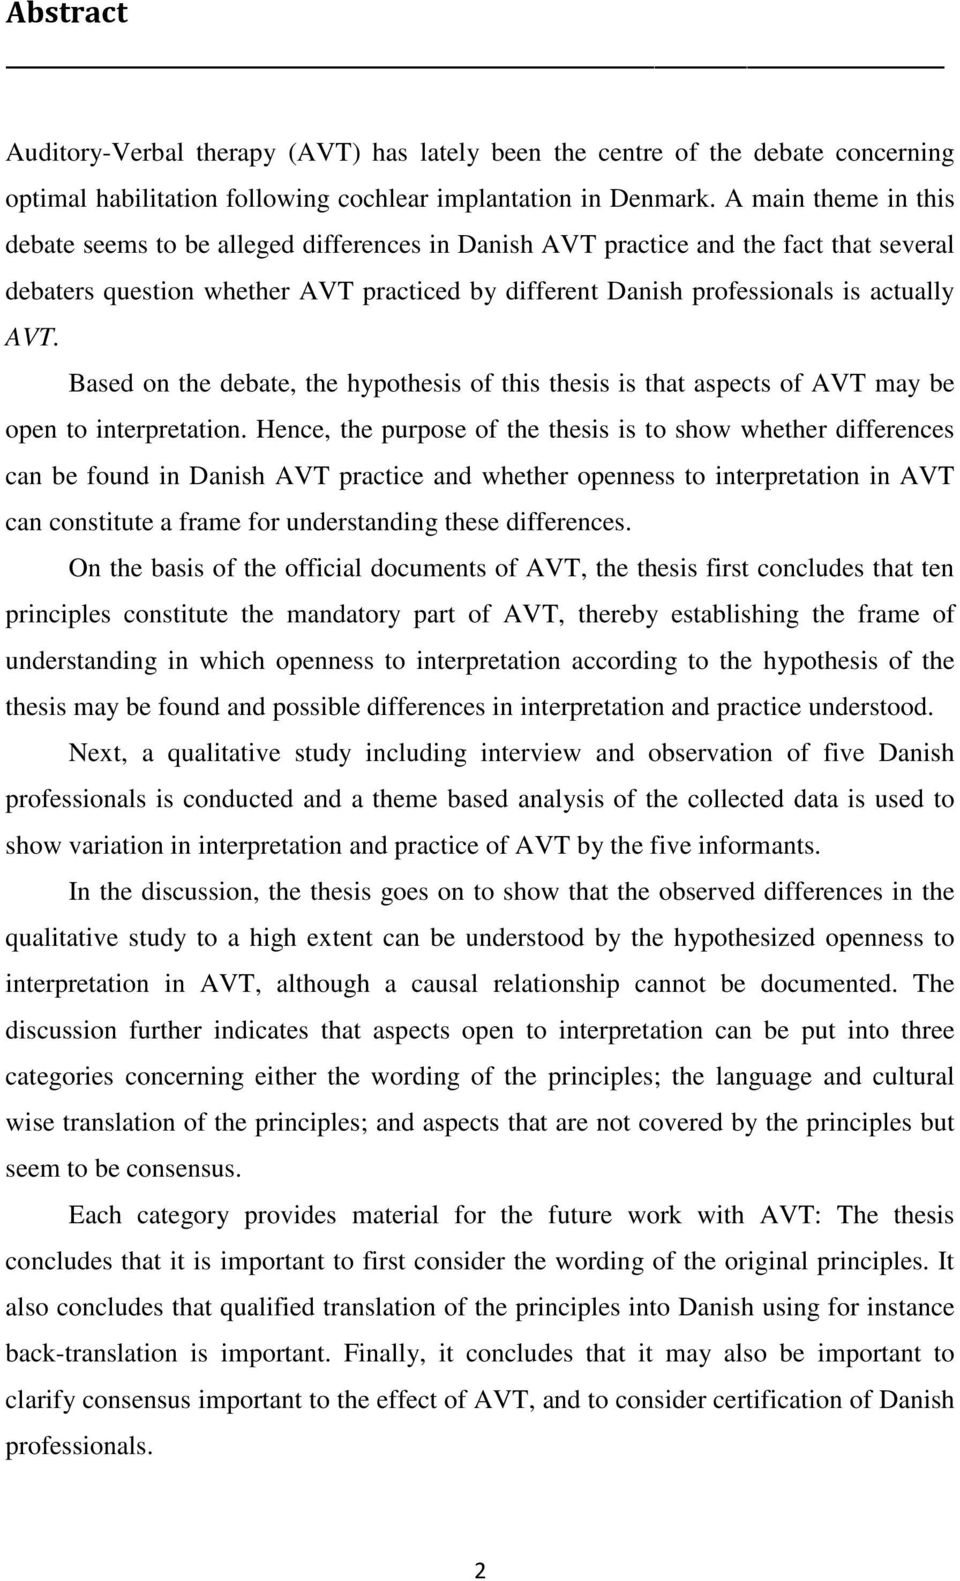 Based on the debate, the hypothesis of this thesis is that aspects of AVT may be open to interpretation.